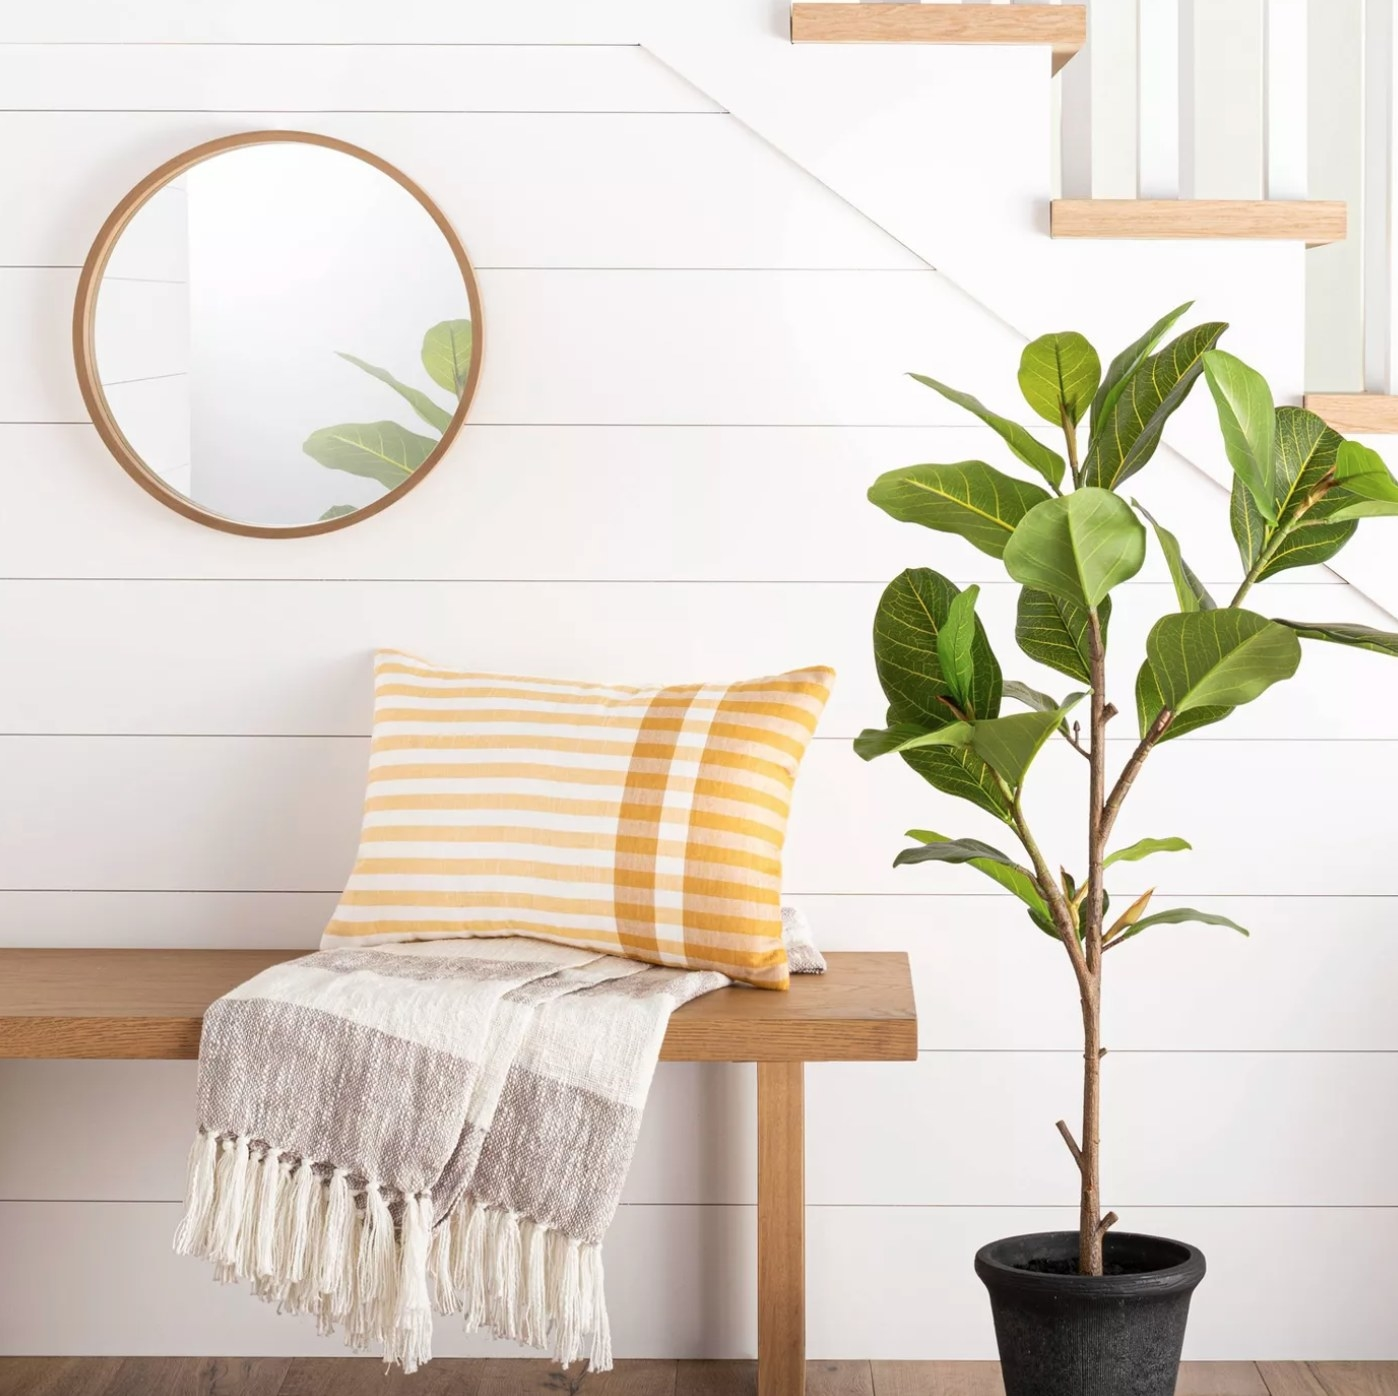 The faux ficus tree